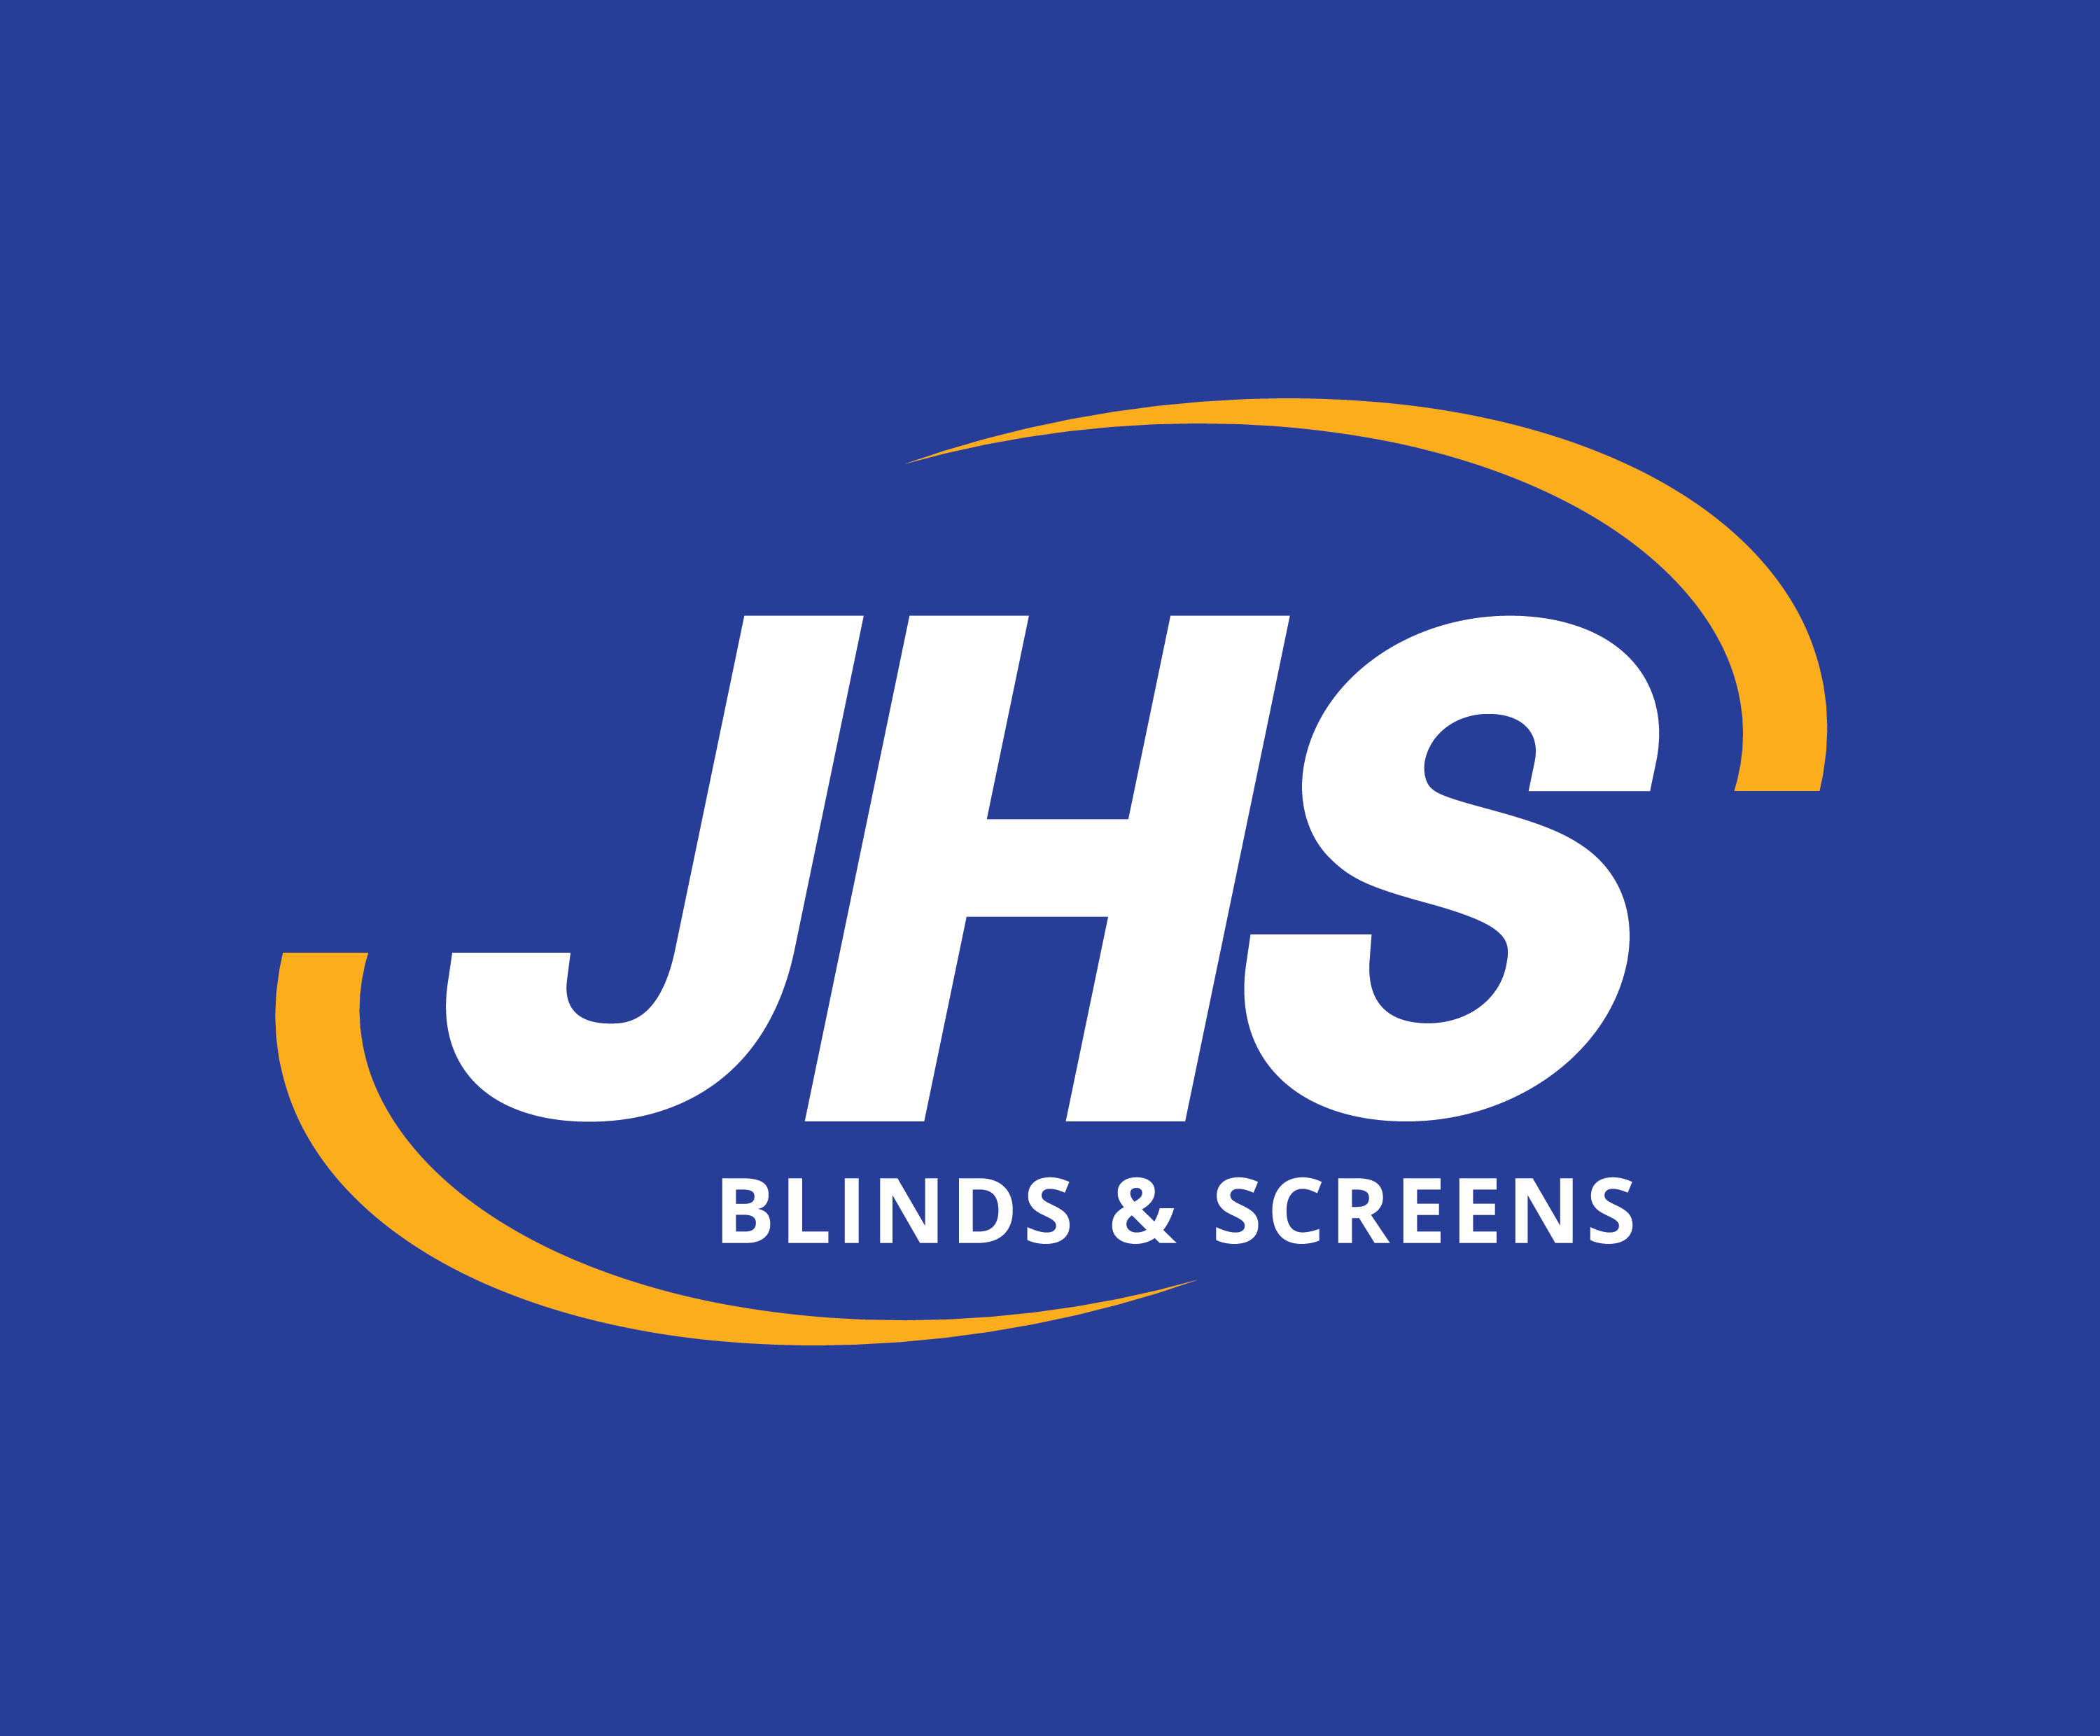 JHS-Blinds-and-screens-logo